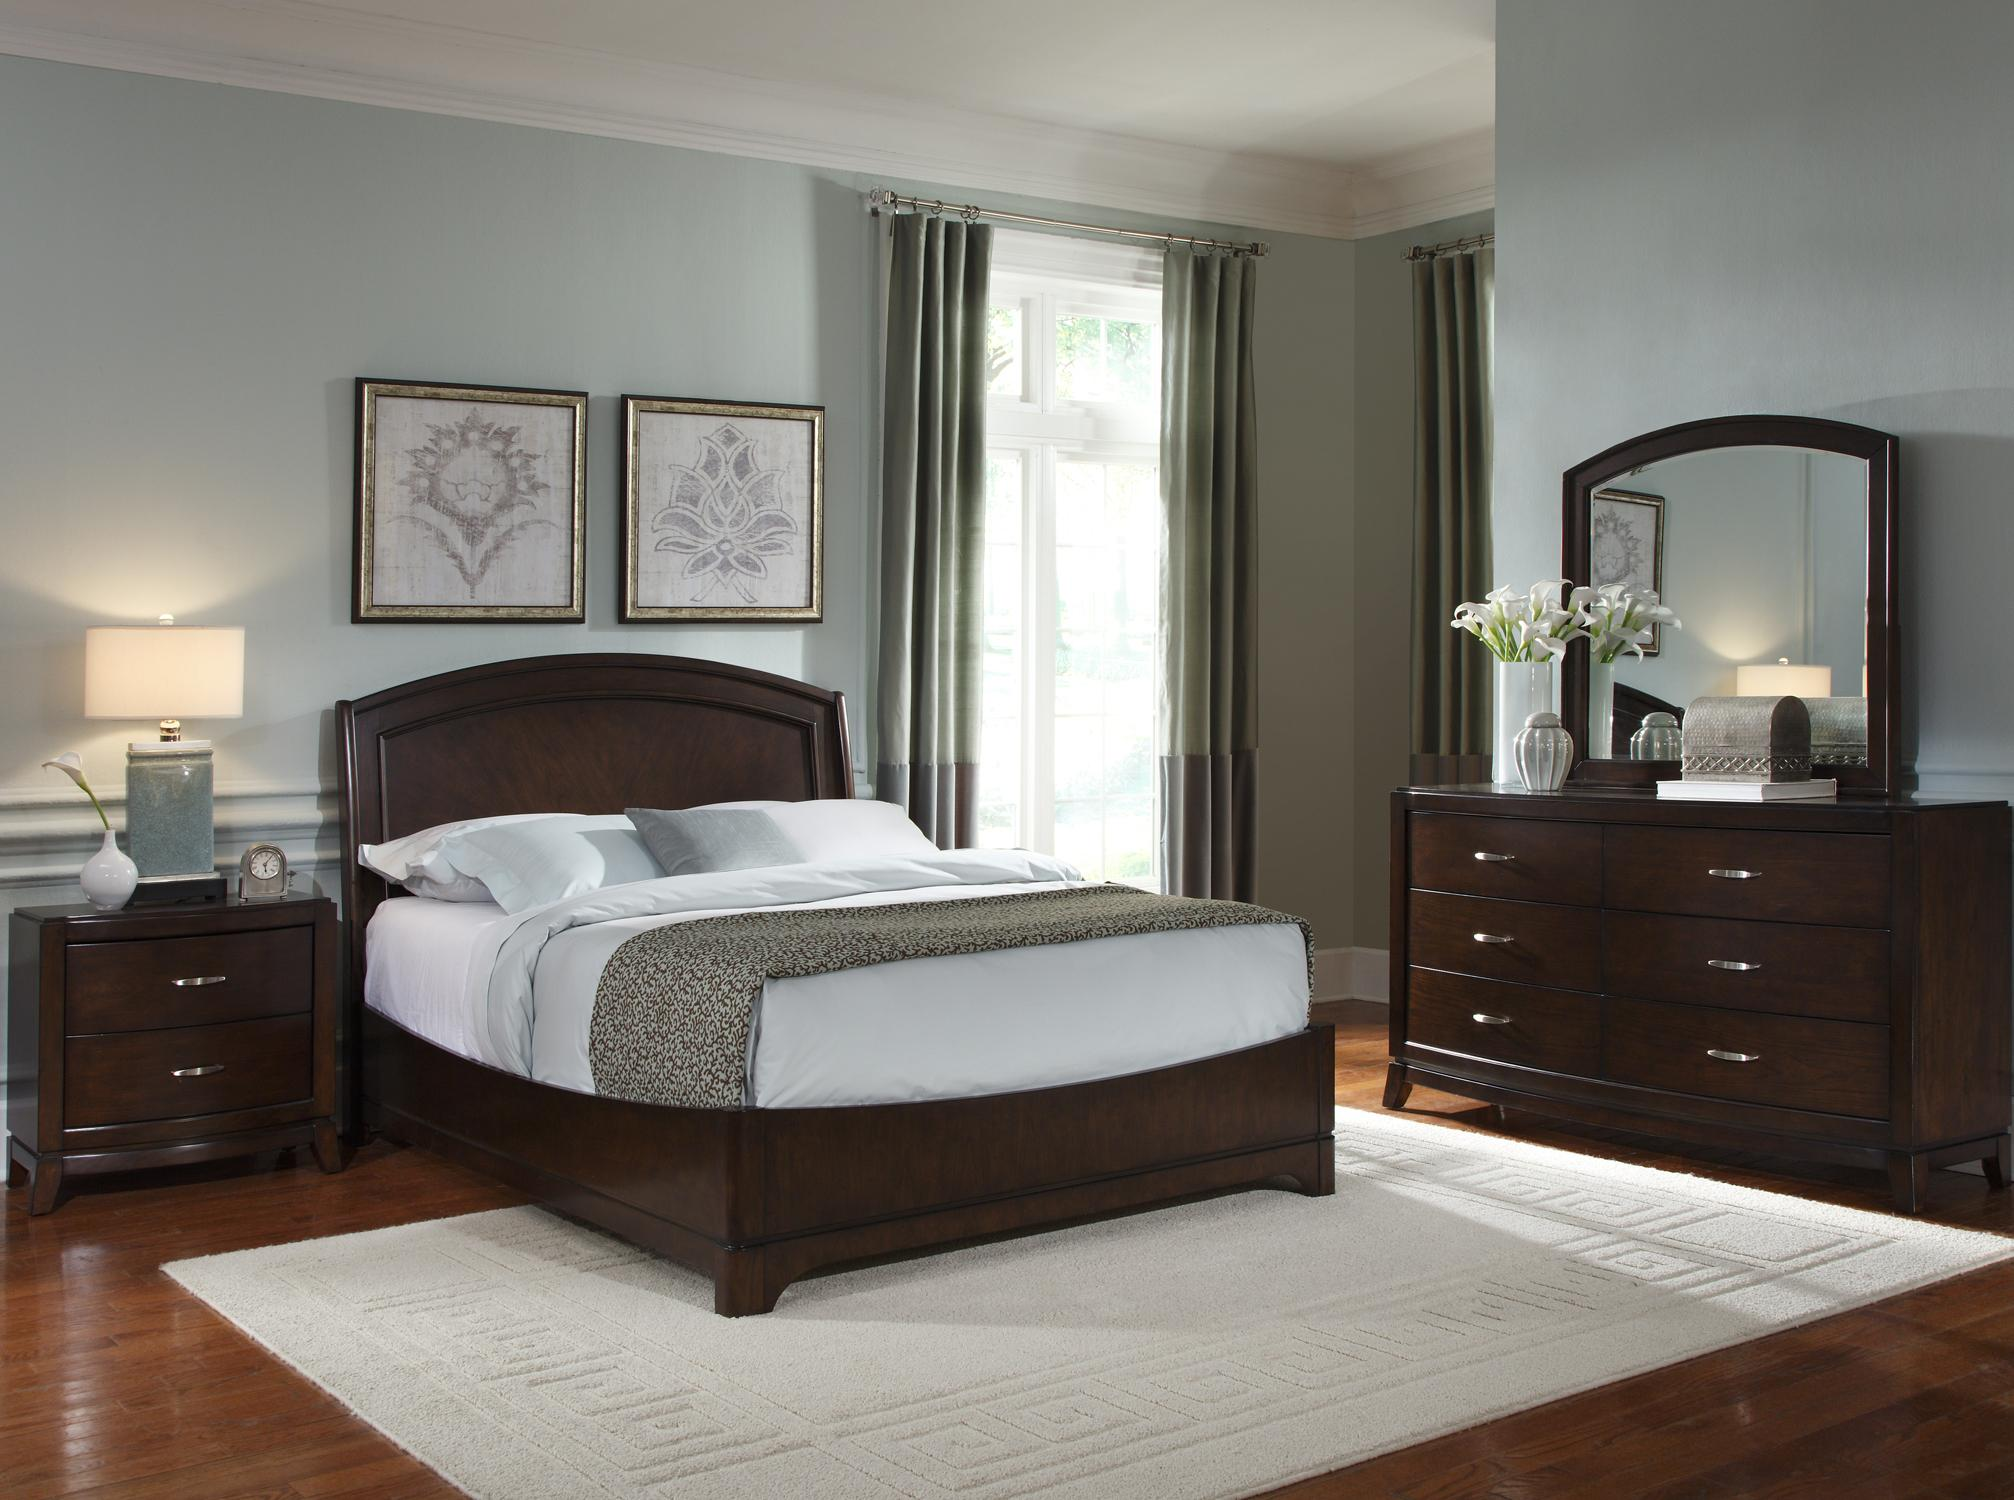 liberty furniture avalon 505 br kpldmn king bedroom group